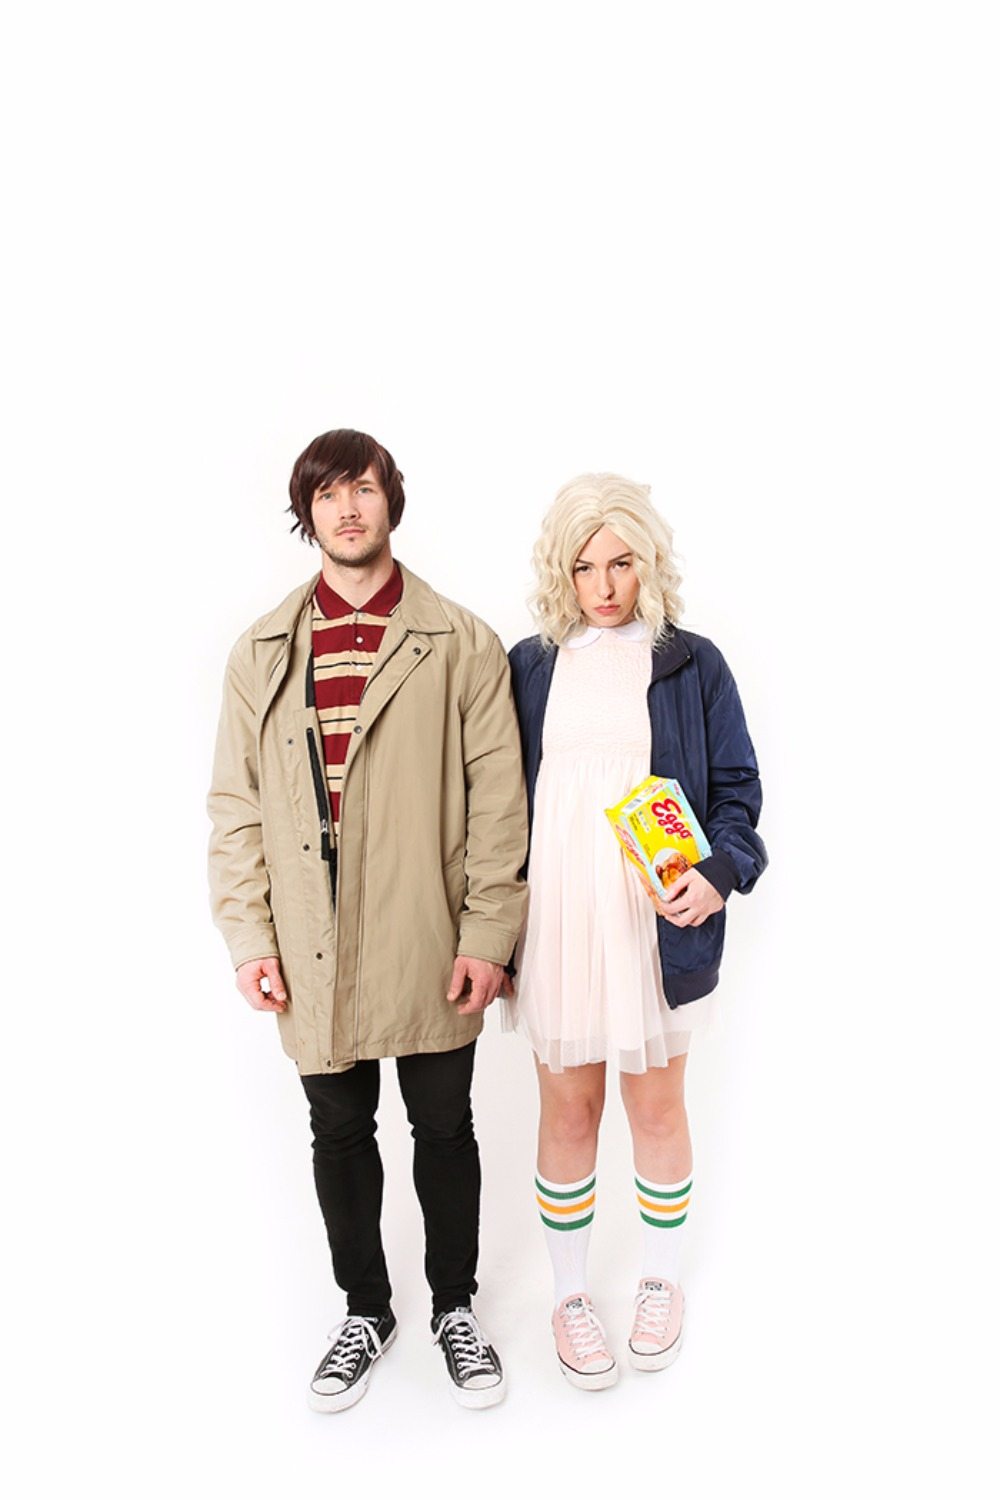 15 Pop-Culture Costumes You'll Want to Wear this Halloween